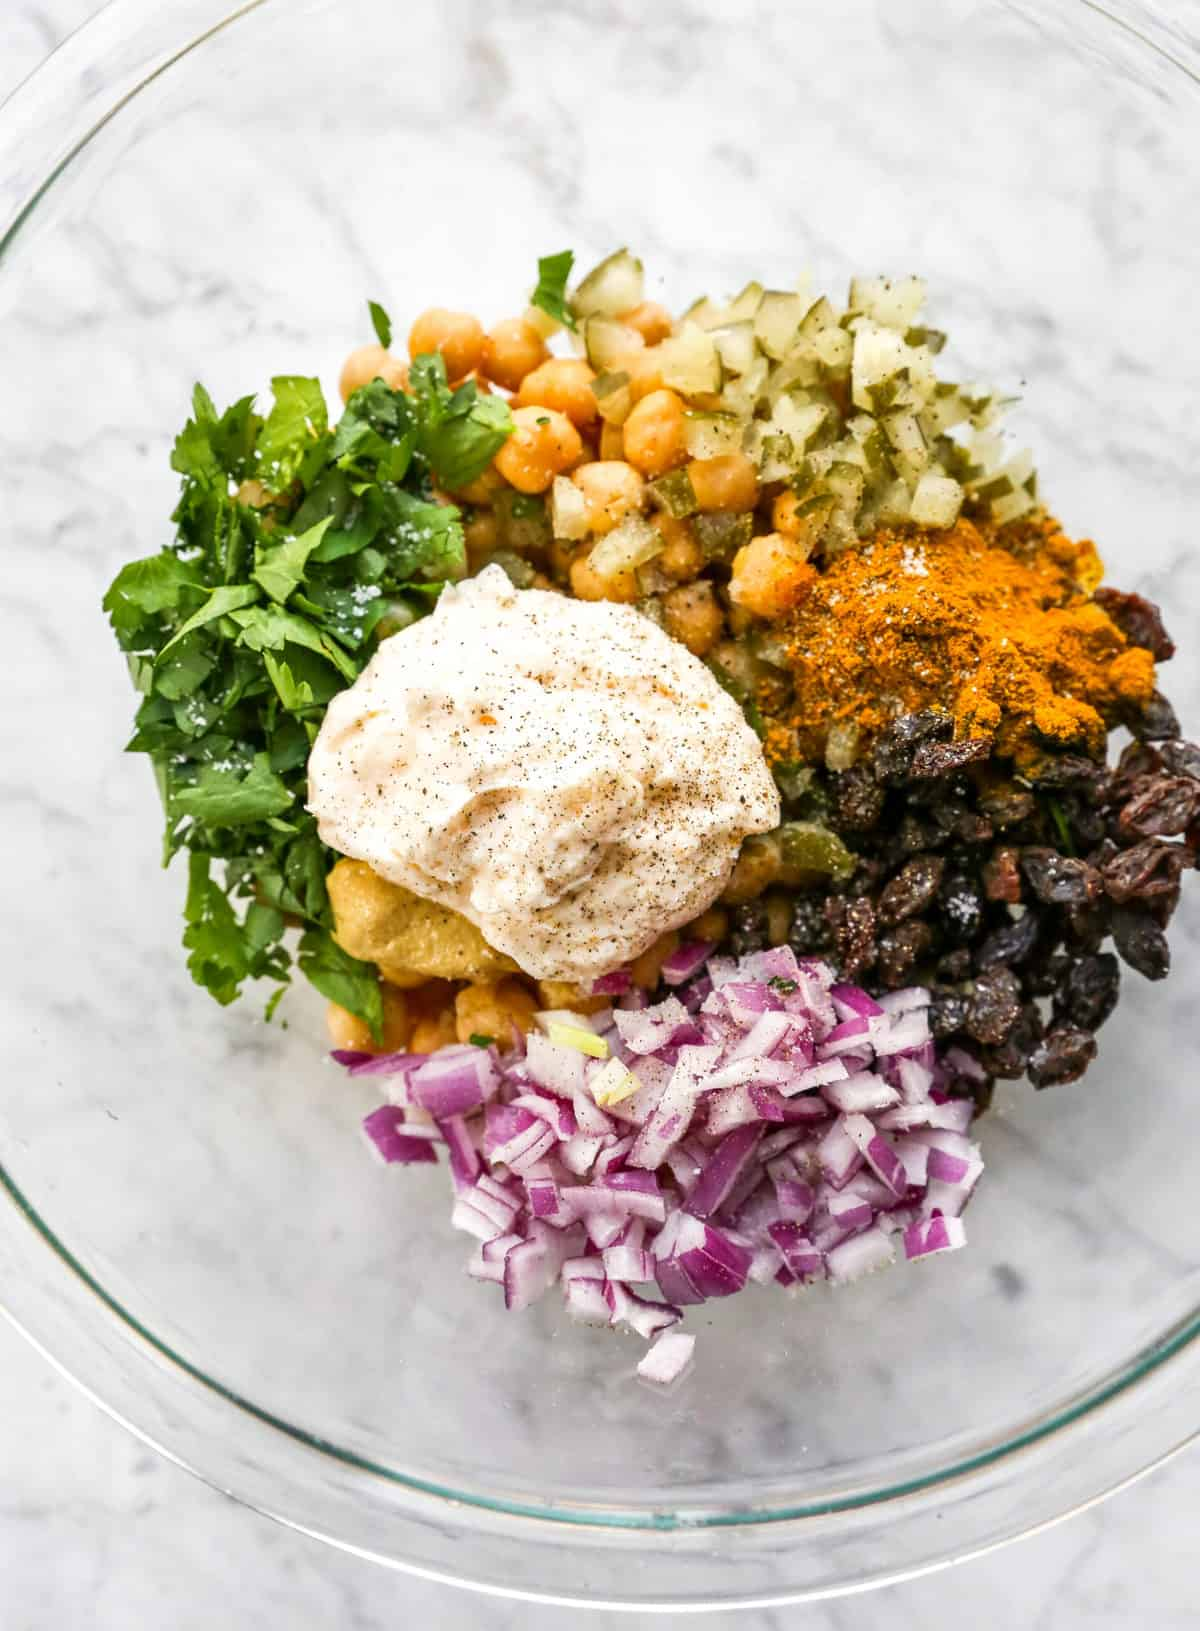 curried chickpea salad ingredients in a bowl before mixing